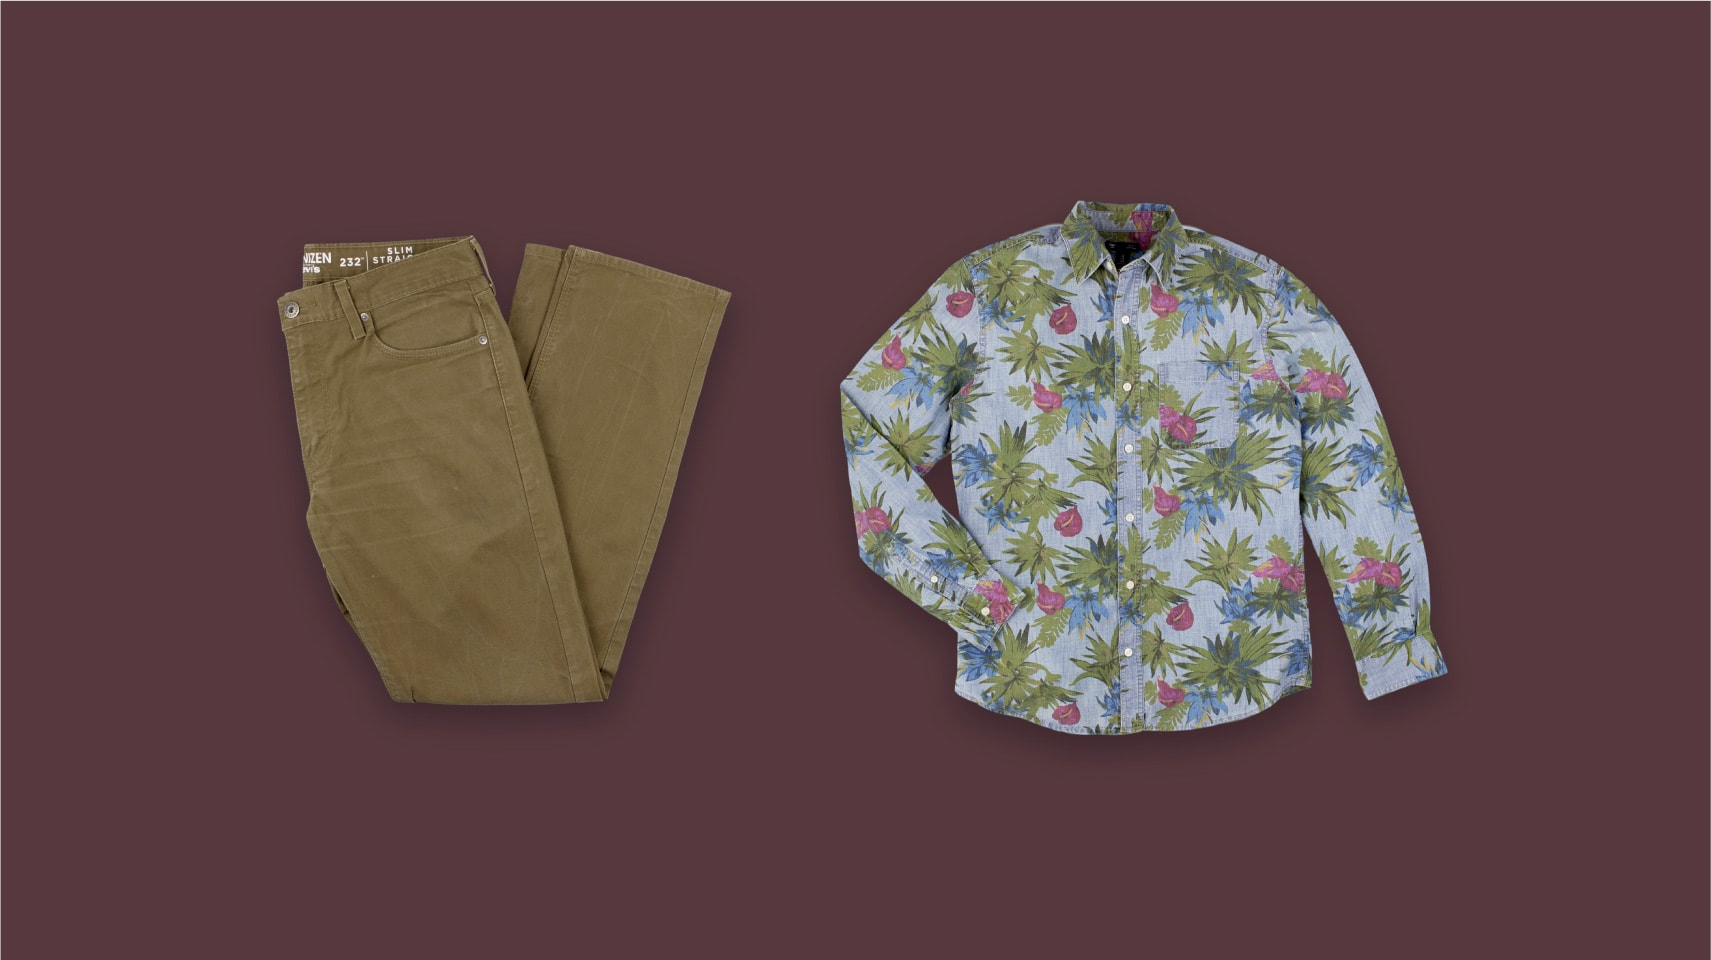 Example of a clothing flatlay